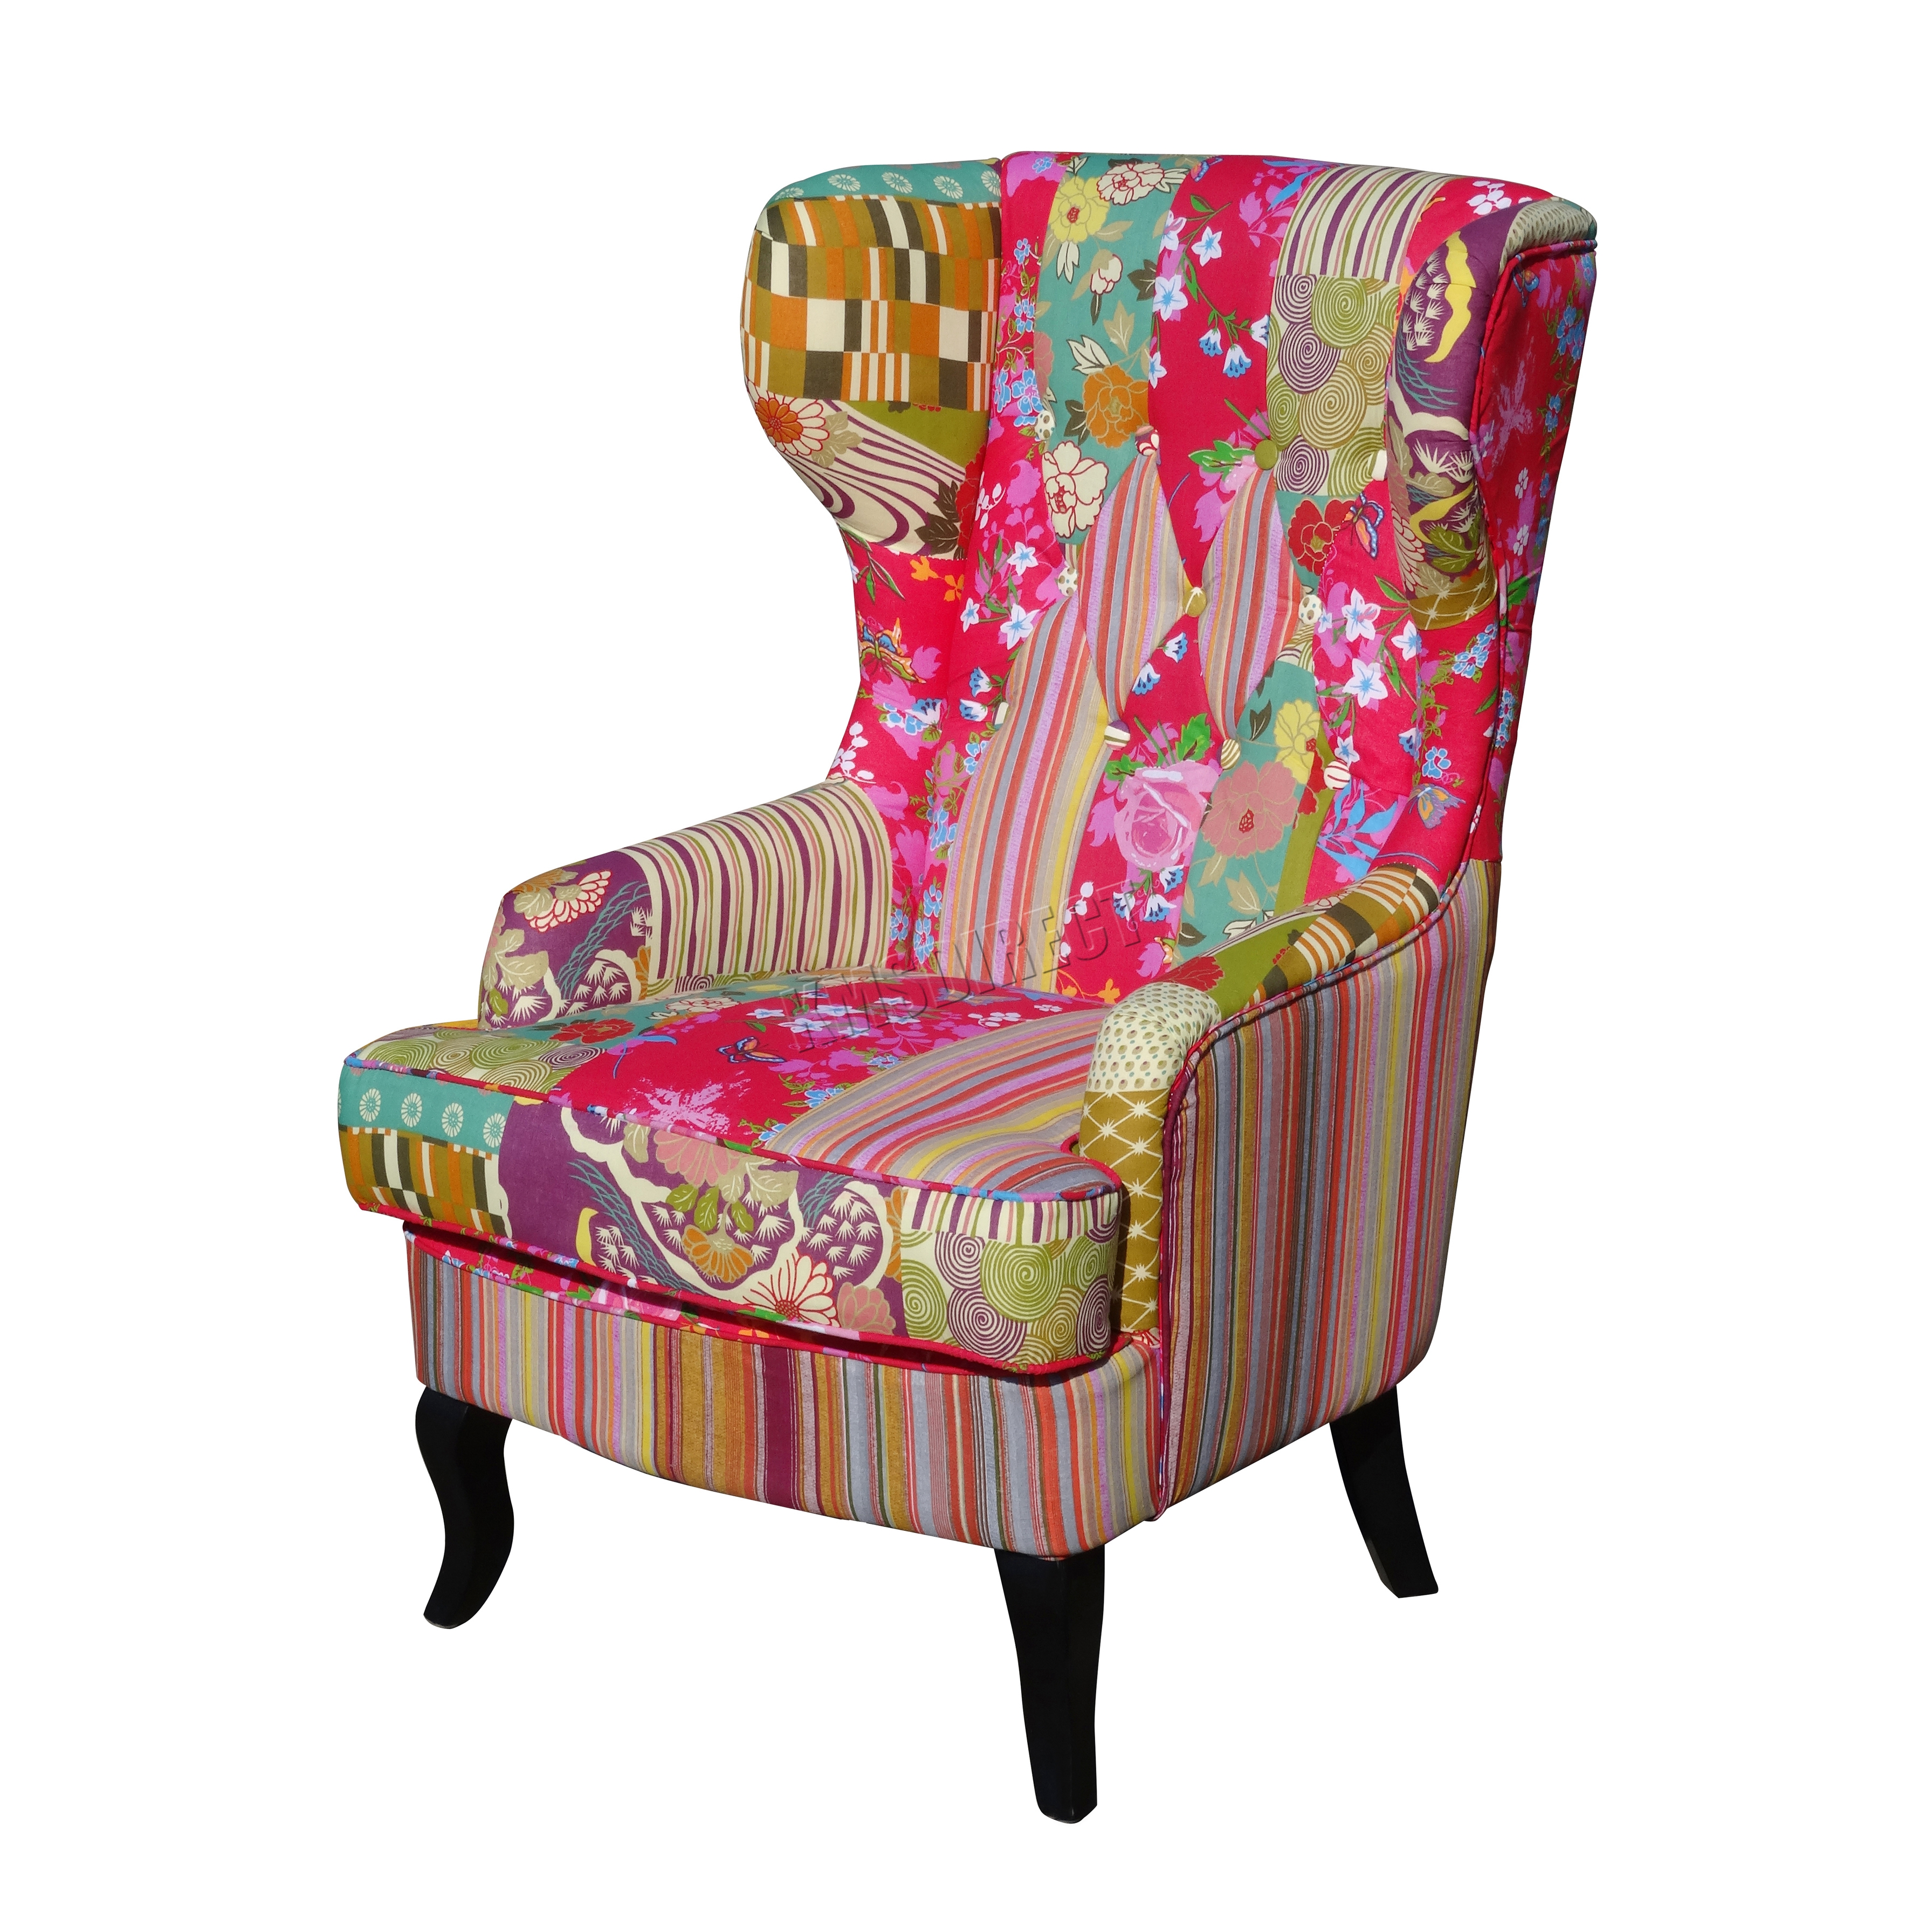 FoxHunter Patchwork Chair Fabric Vintage Armchair Seat  : PATCHWORK CHAIR PC073 KMSWM01 from www.ebay.co.uk size 3583 x 3583 jpeg 3828kB